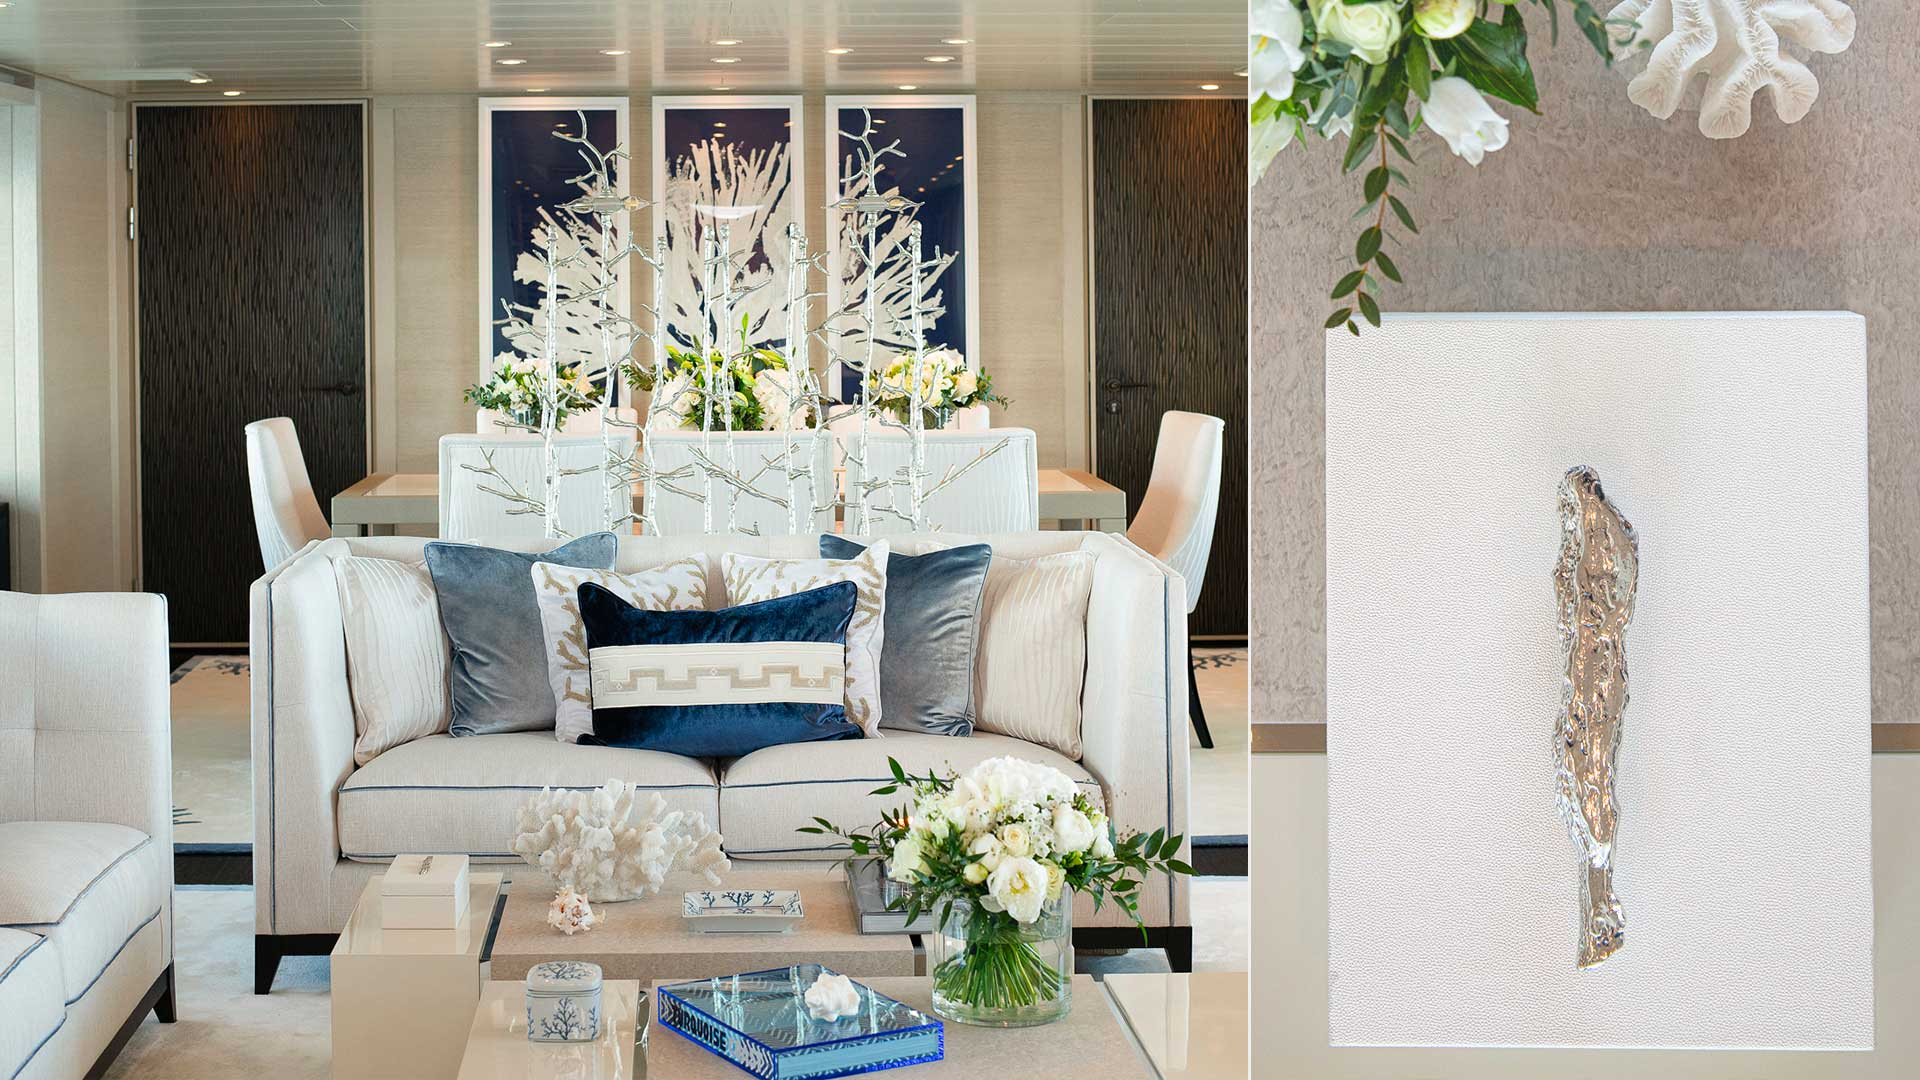 YACHT-REFIT-AMELS-LIMITED-EDITION-04-Dome-interior-design-Geneve-Suisse